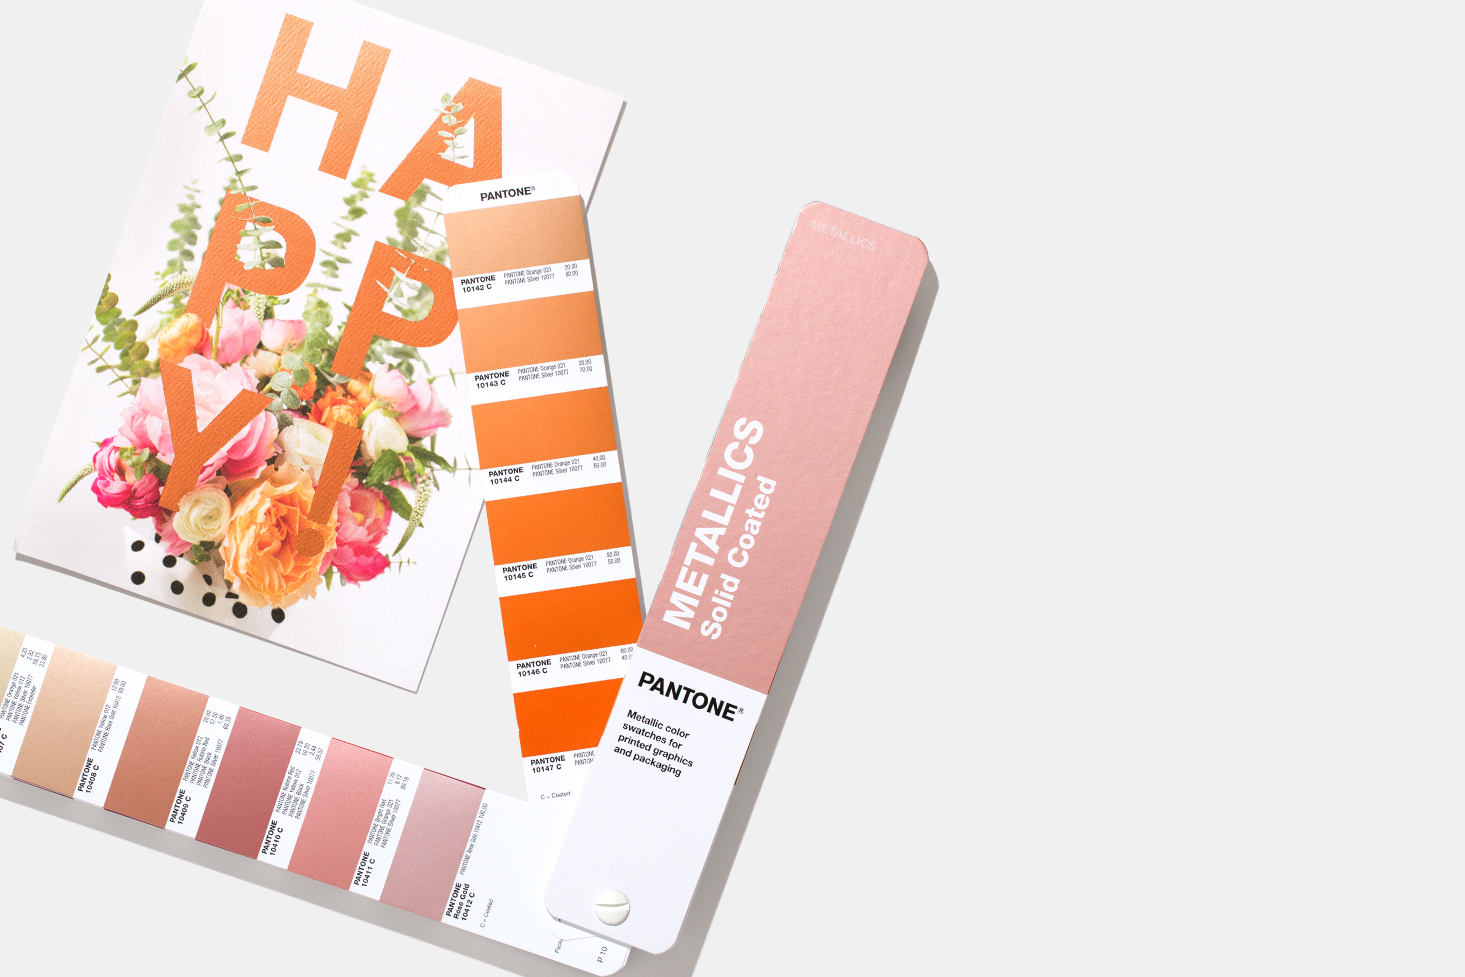 pantone-graphics-pms-metallics-fan-guide-lifestyle